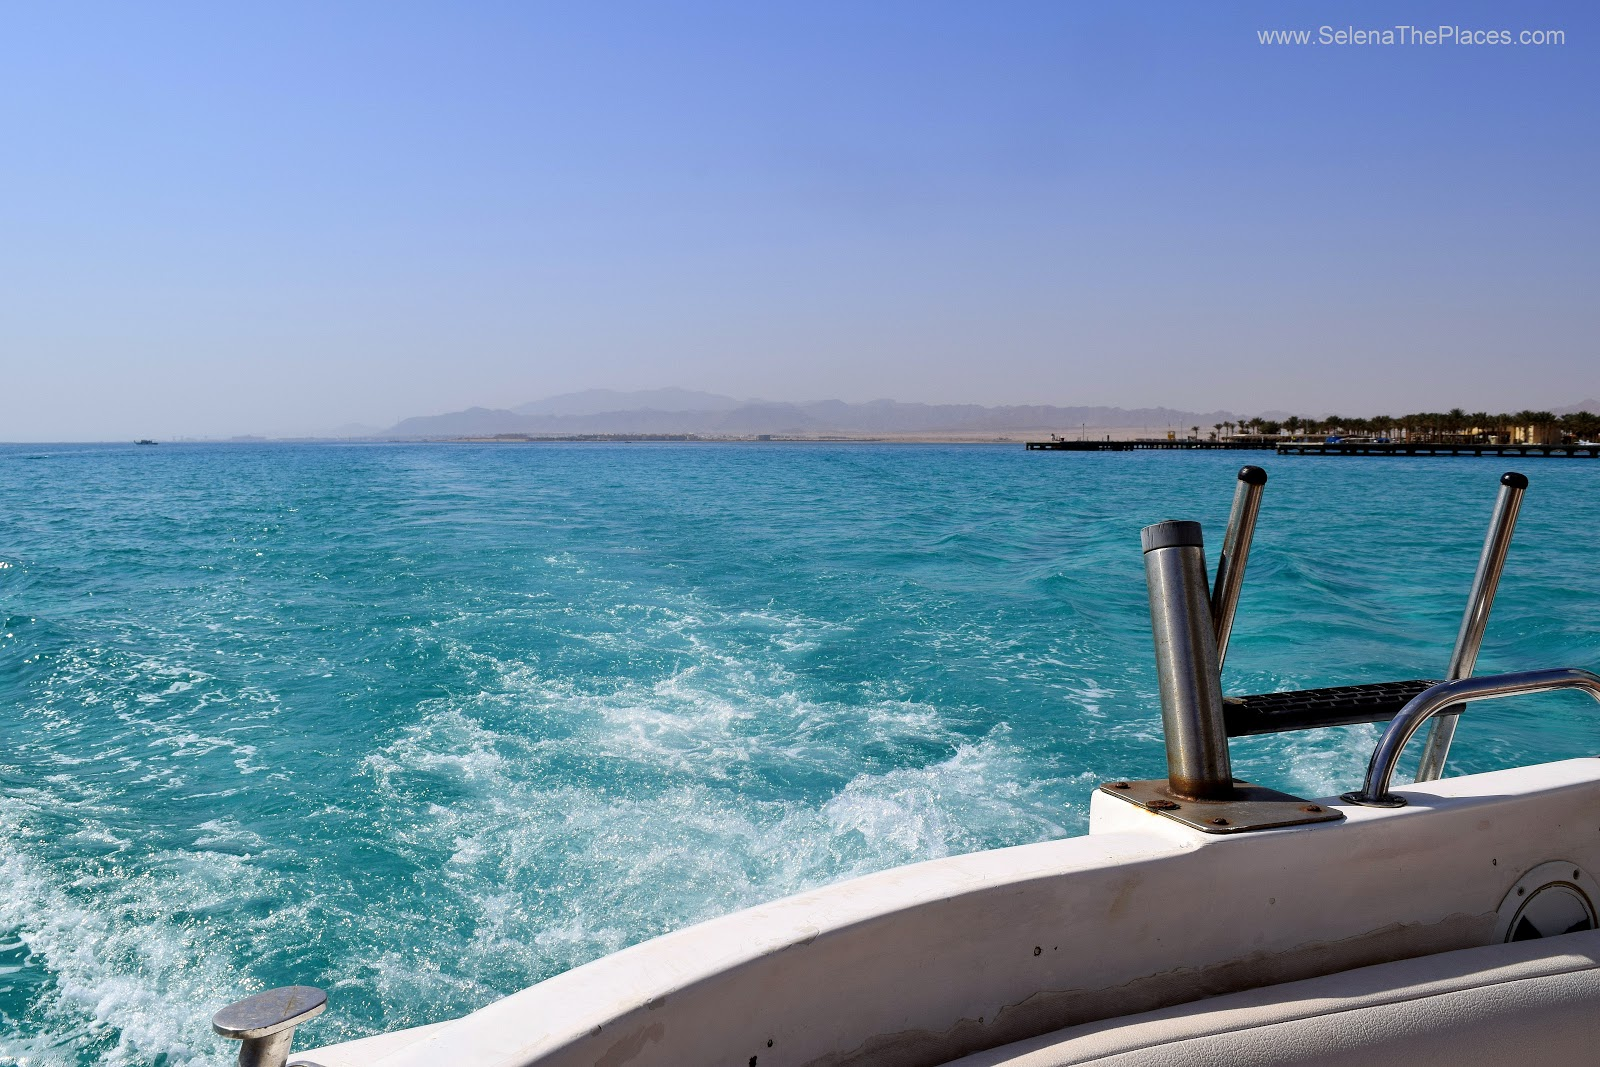 Red Sea Fishing in Hurghada, Egypt